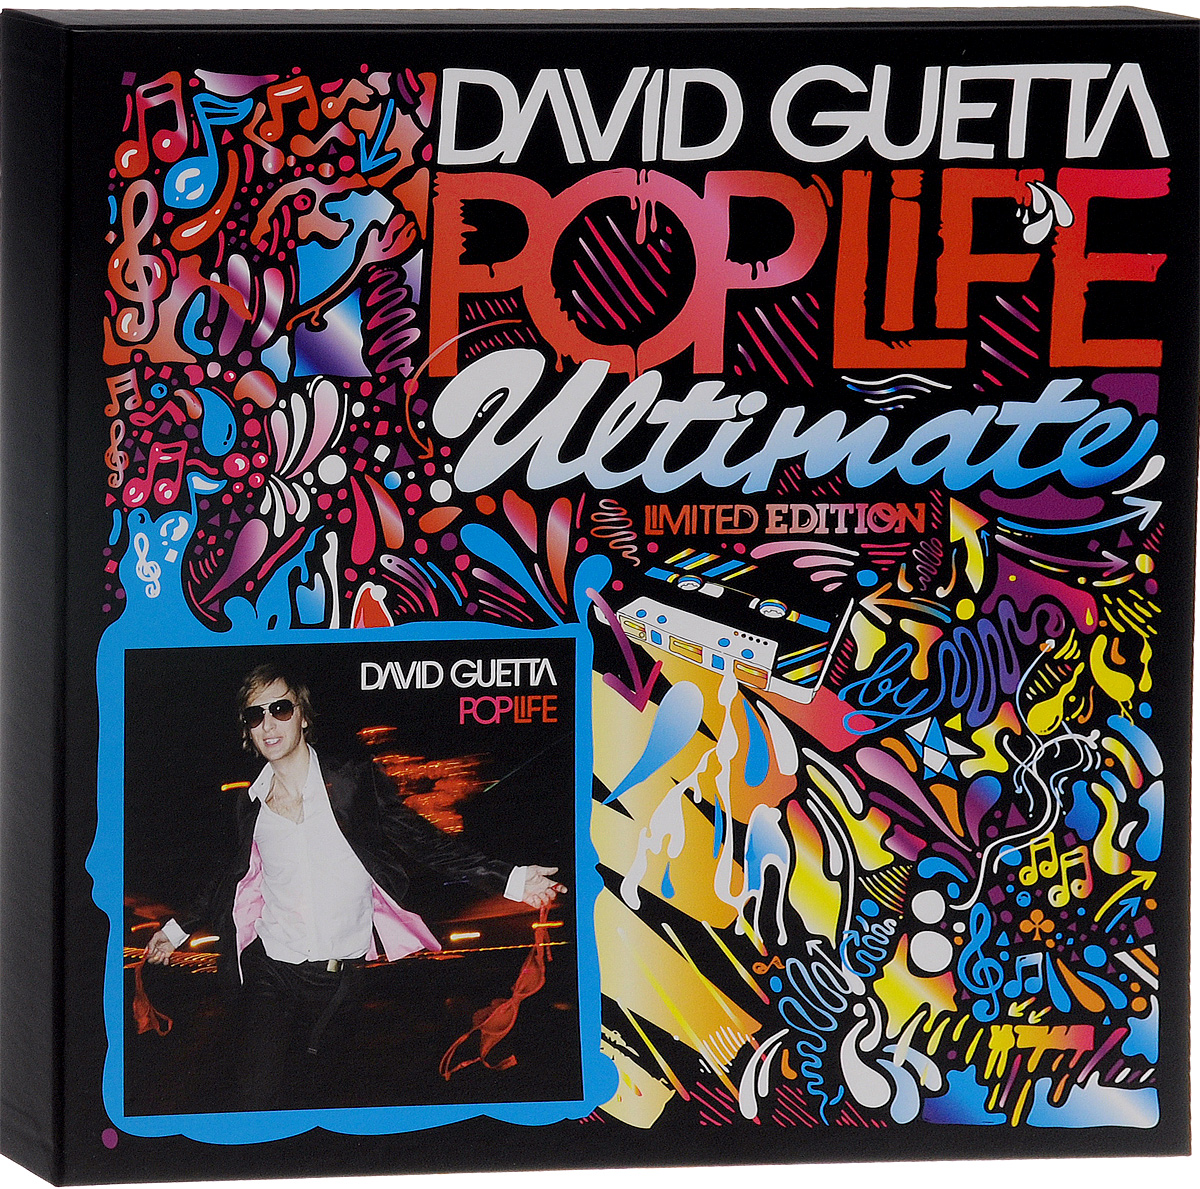 Дэвид Гетта David Guetta. Pop Life Ultimate. Limited Edition (3 CD + DVD + LP) дэвид гетта flo rida ники минаж тайо круз лудакрис afrojack дженифер хадсон jessie j david guetta nothing but the beat 2 lp